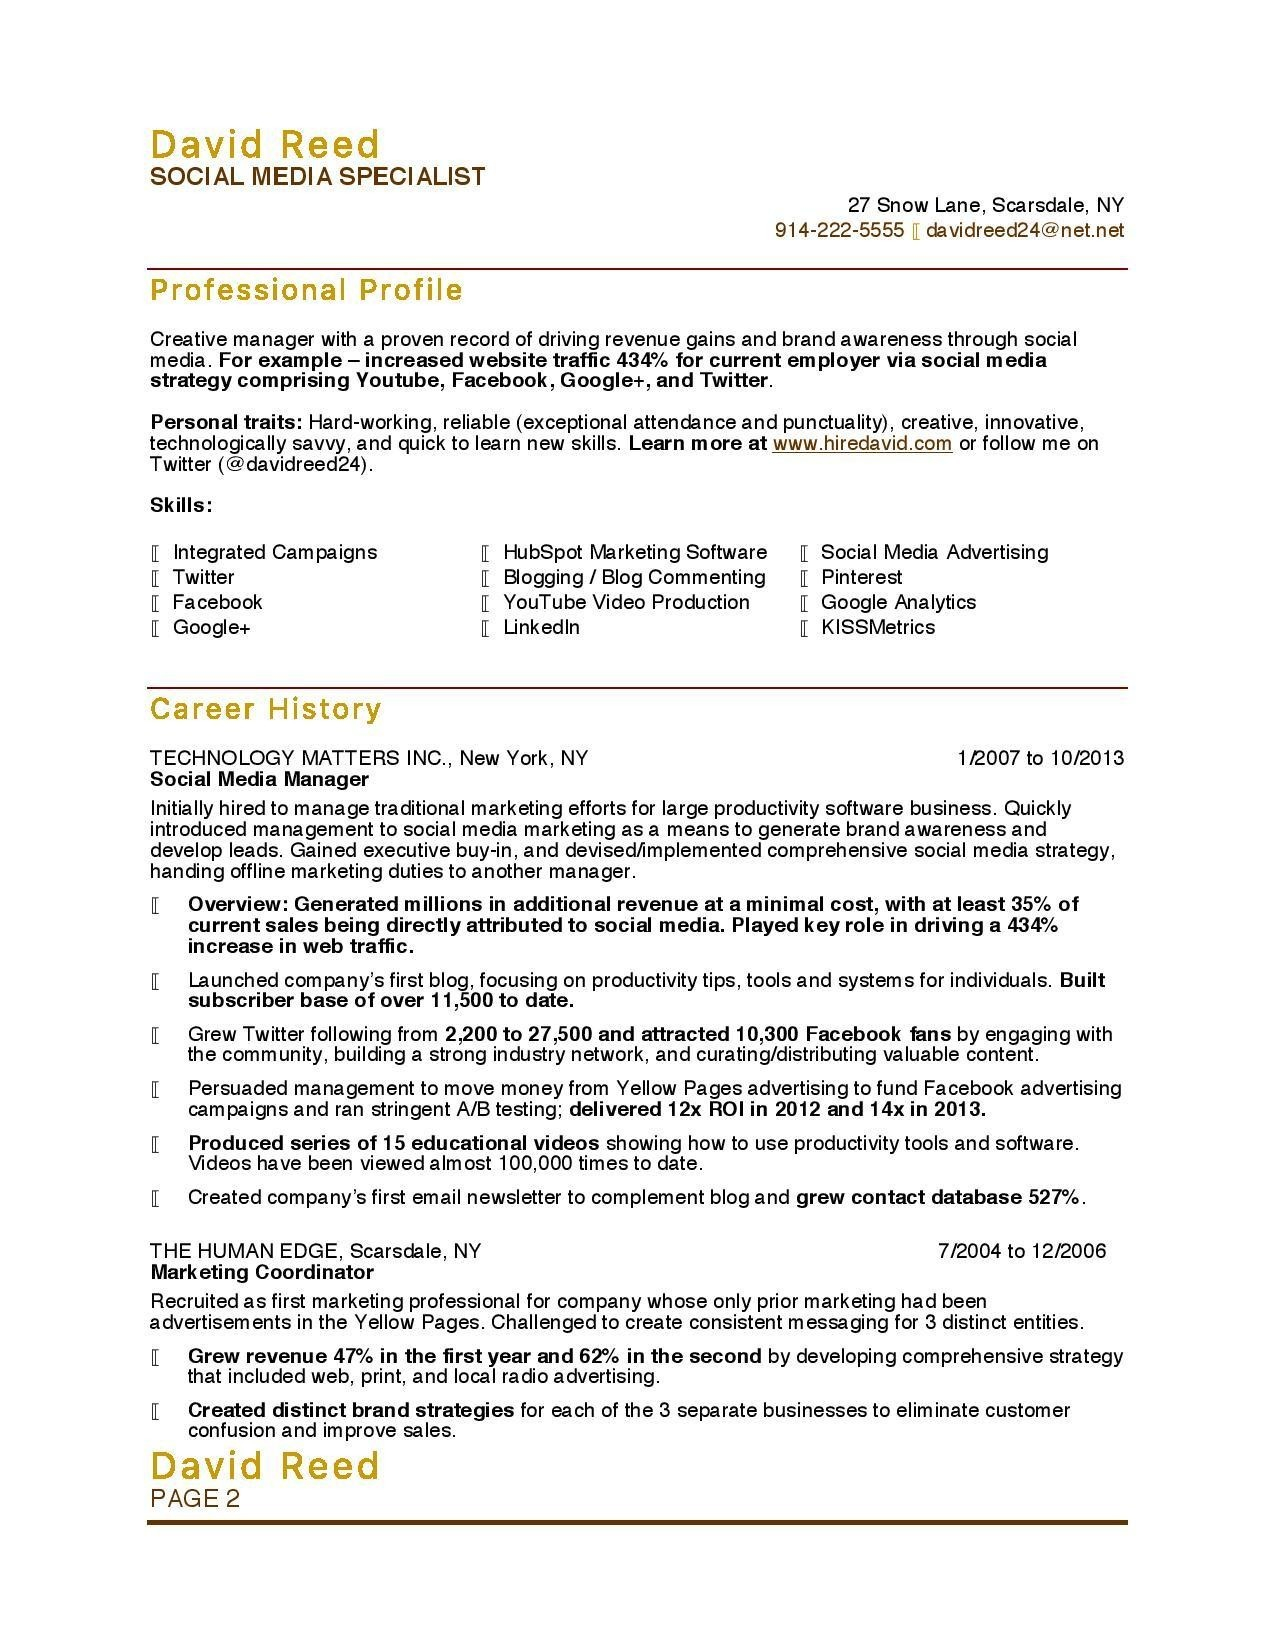 social media skills on resume example Collection-Luxury Grapher Resume Sample Beautiful Resume Quotes 0d social Media 6-b